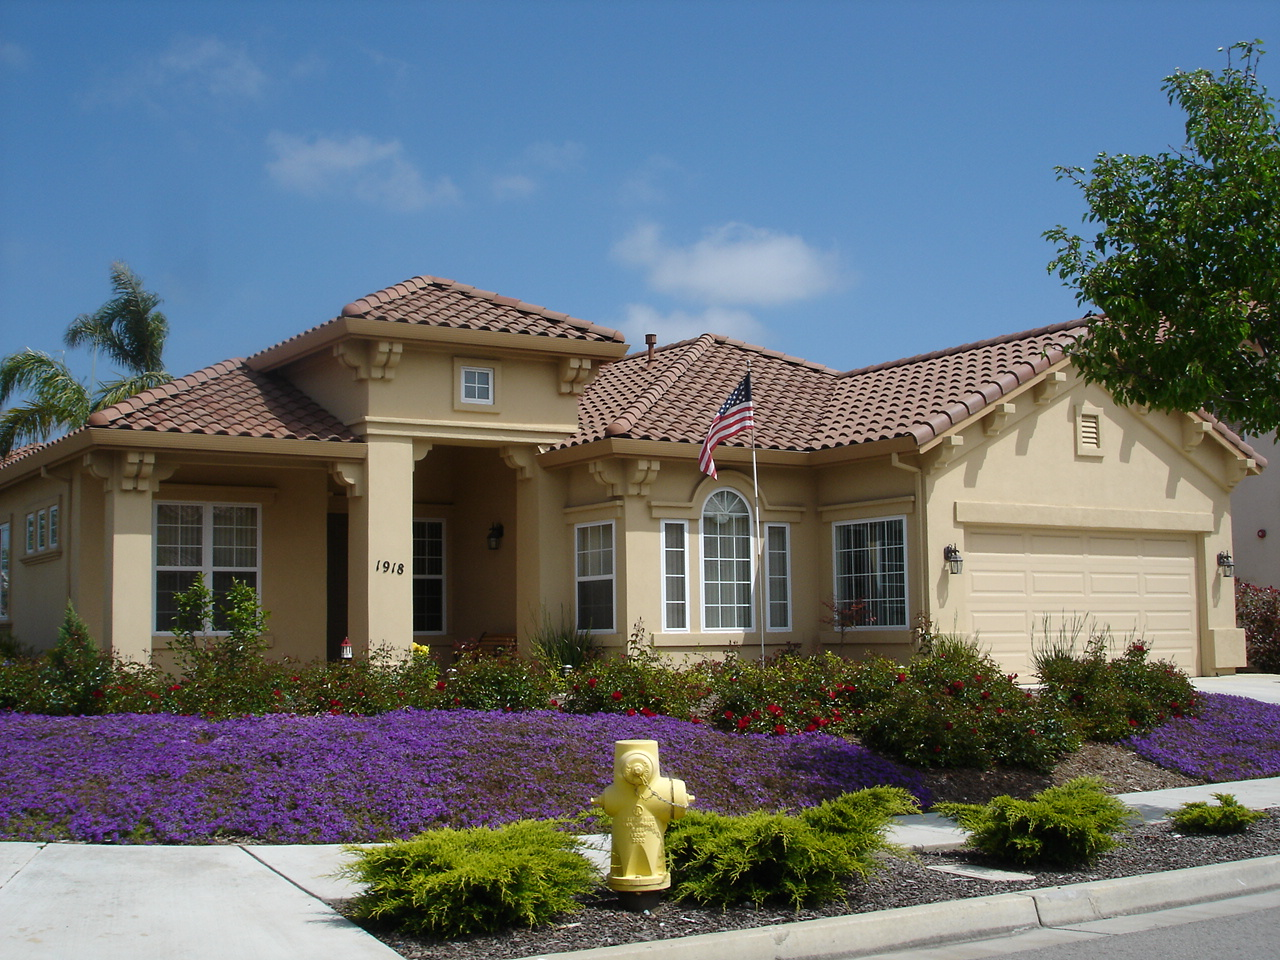 Fabulous California Ranch Style Homes 1280 x 960 · 586 kB · jpeg